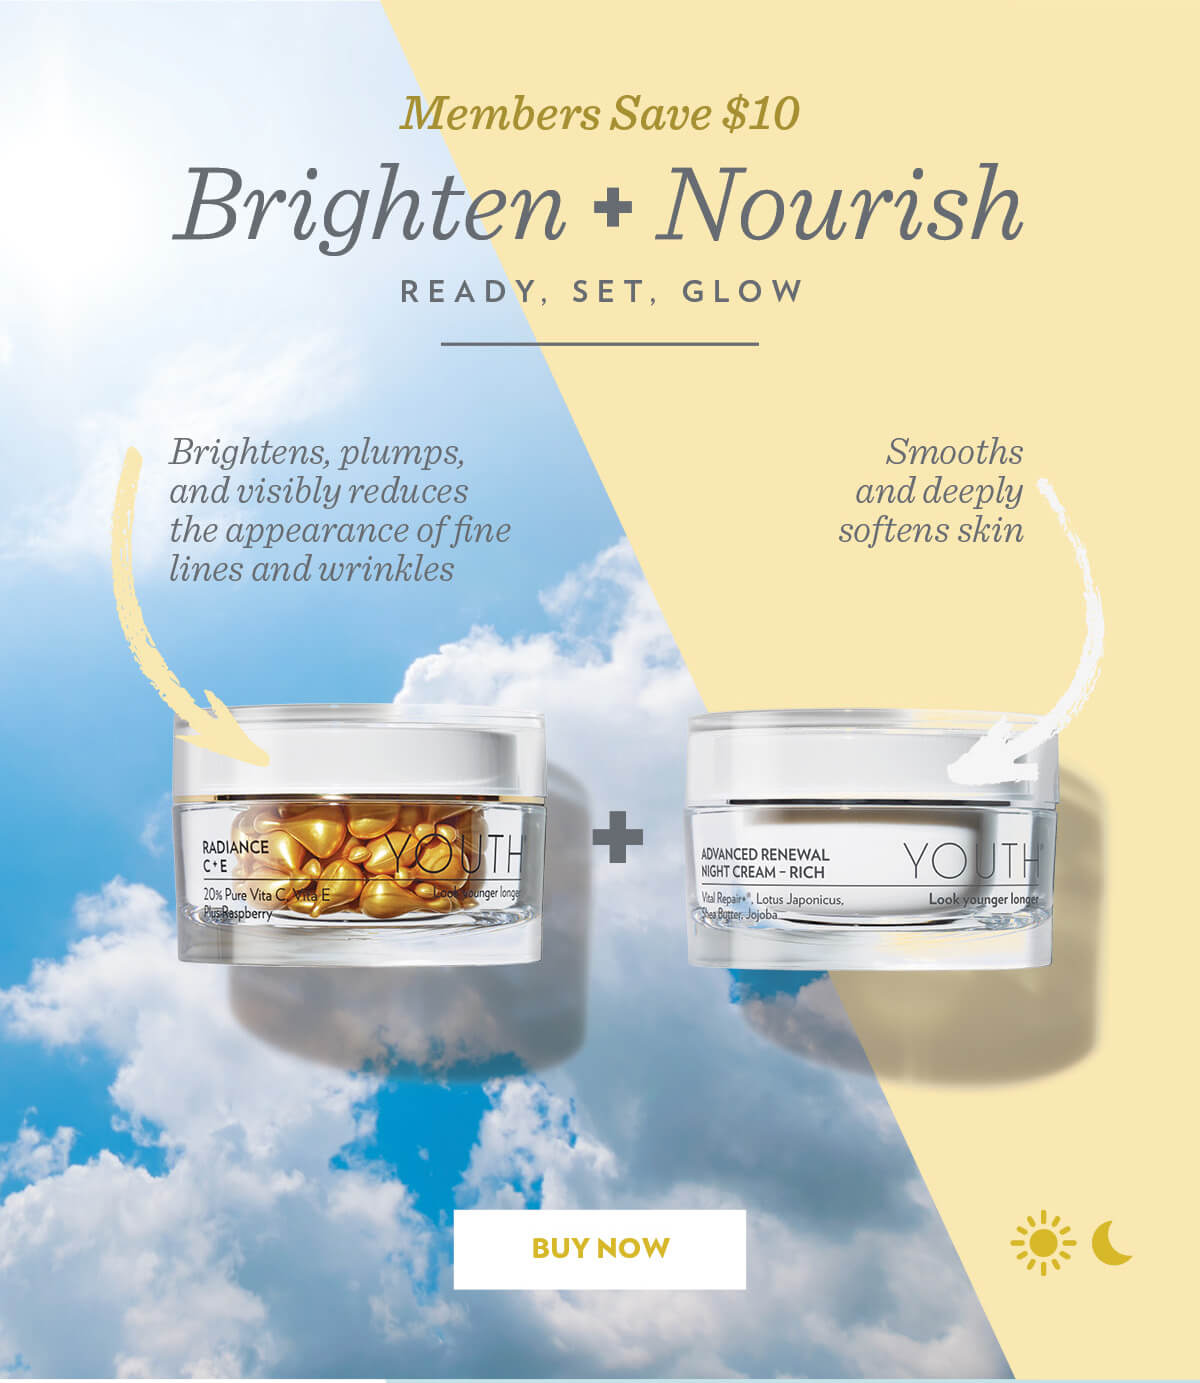 Members Save $10. Brighten + Nourish